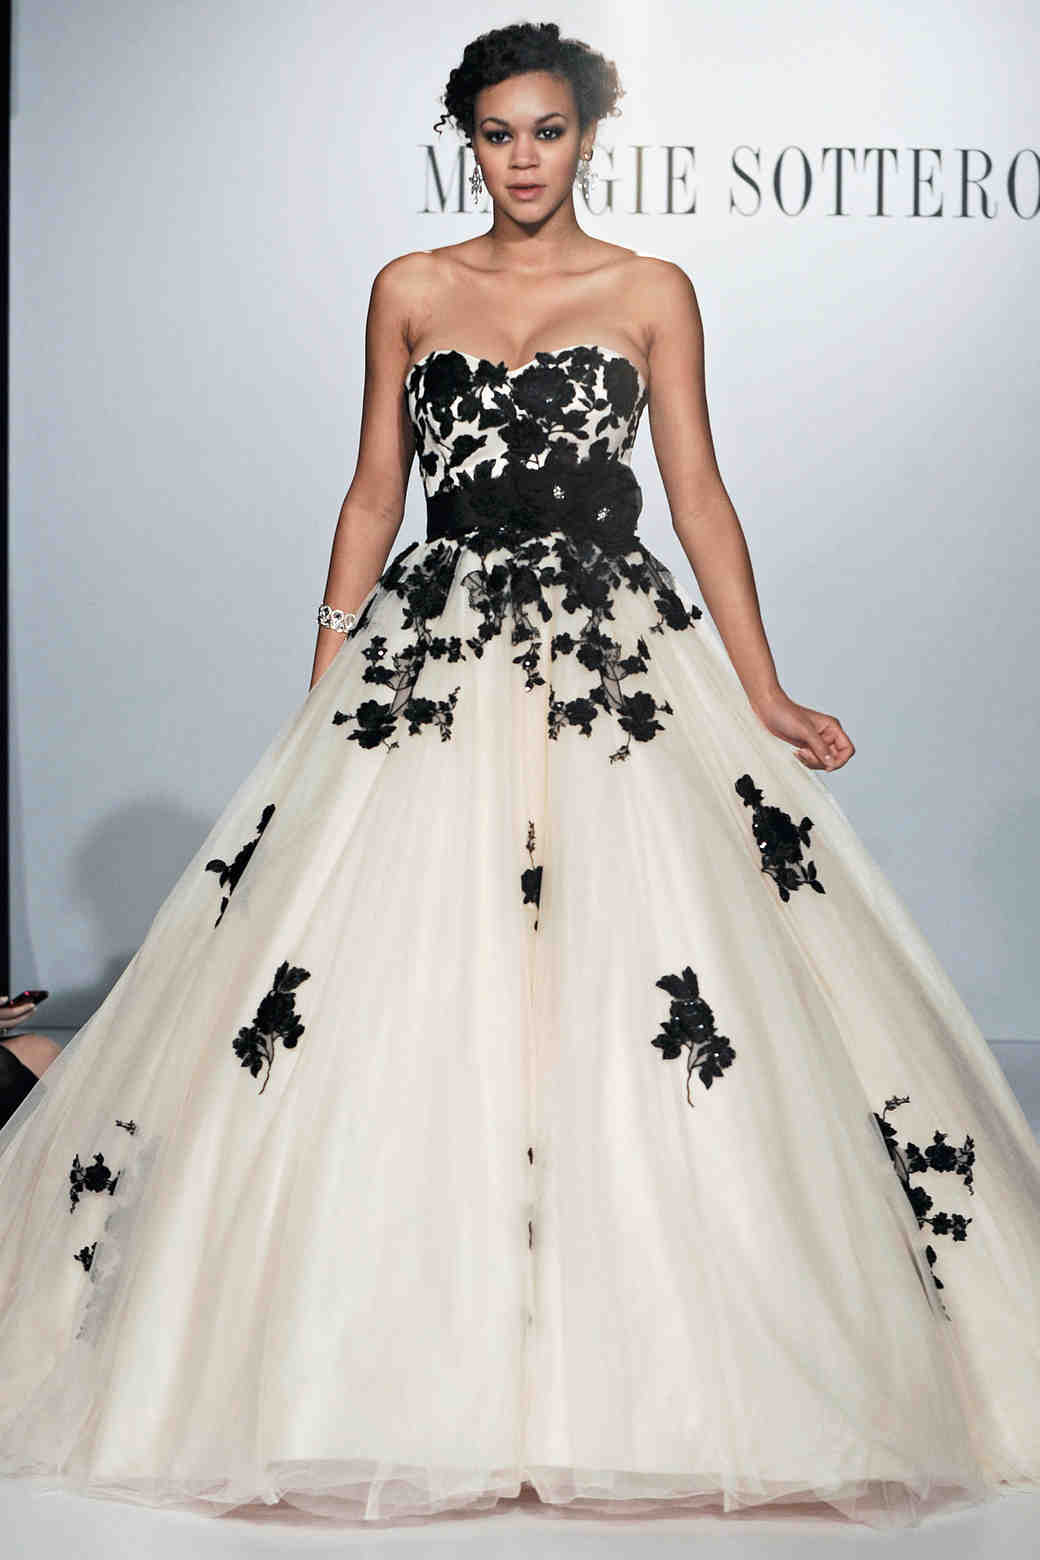 Maggie Sottero black and white wedding dress